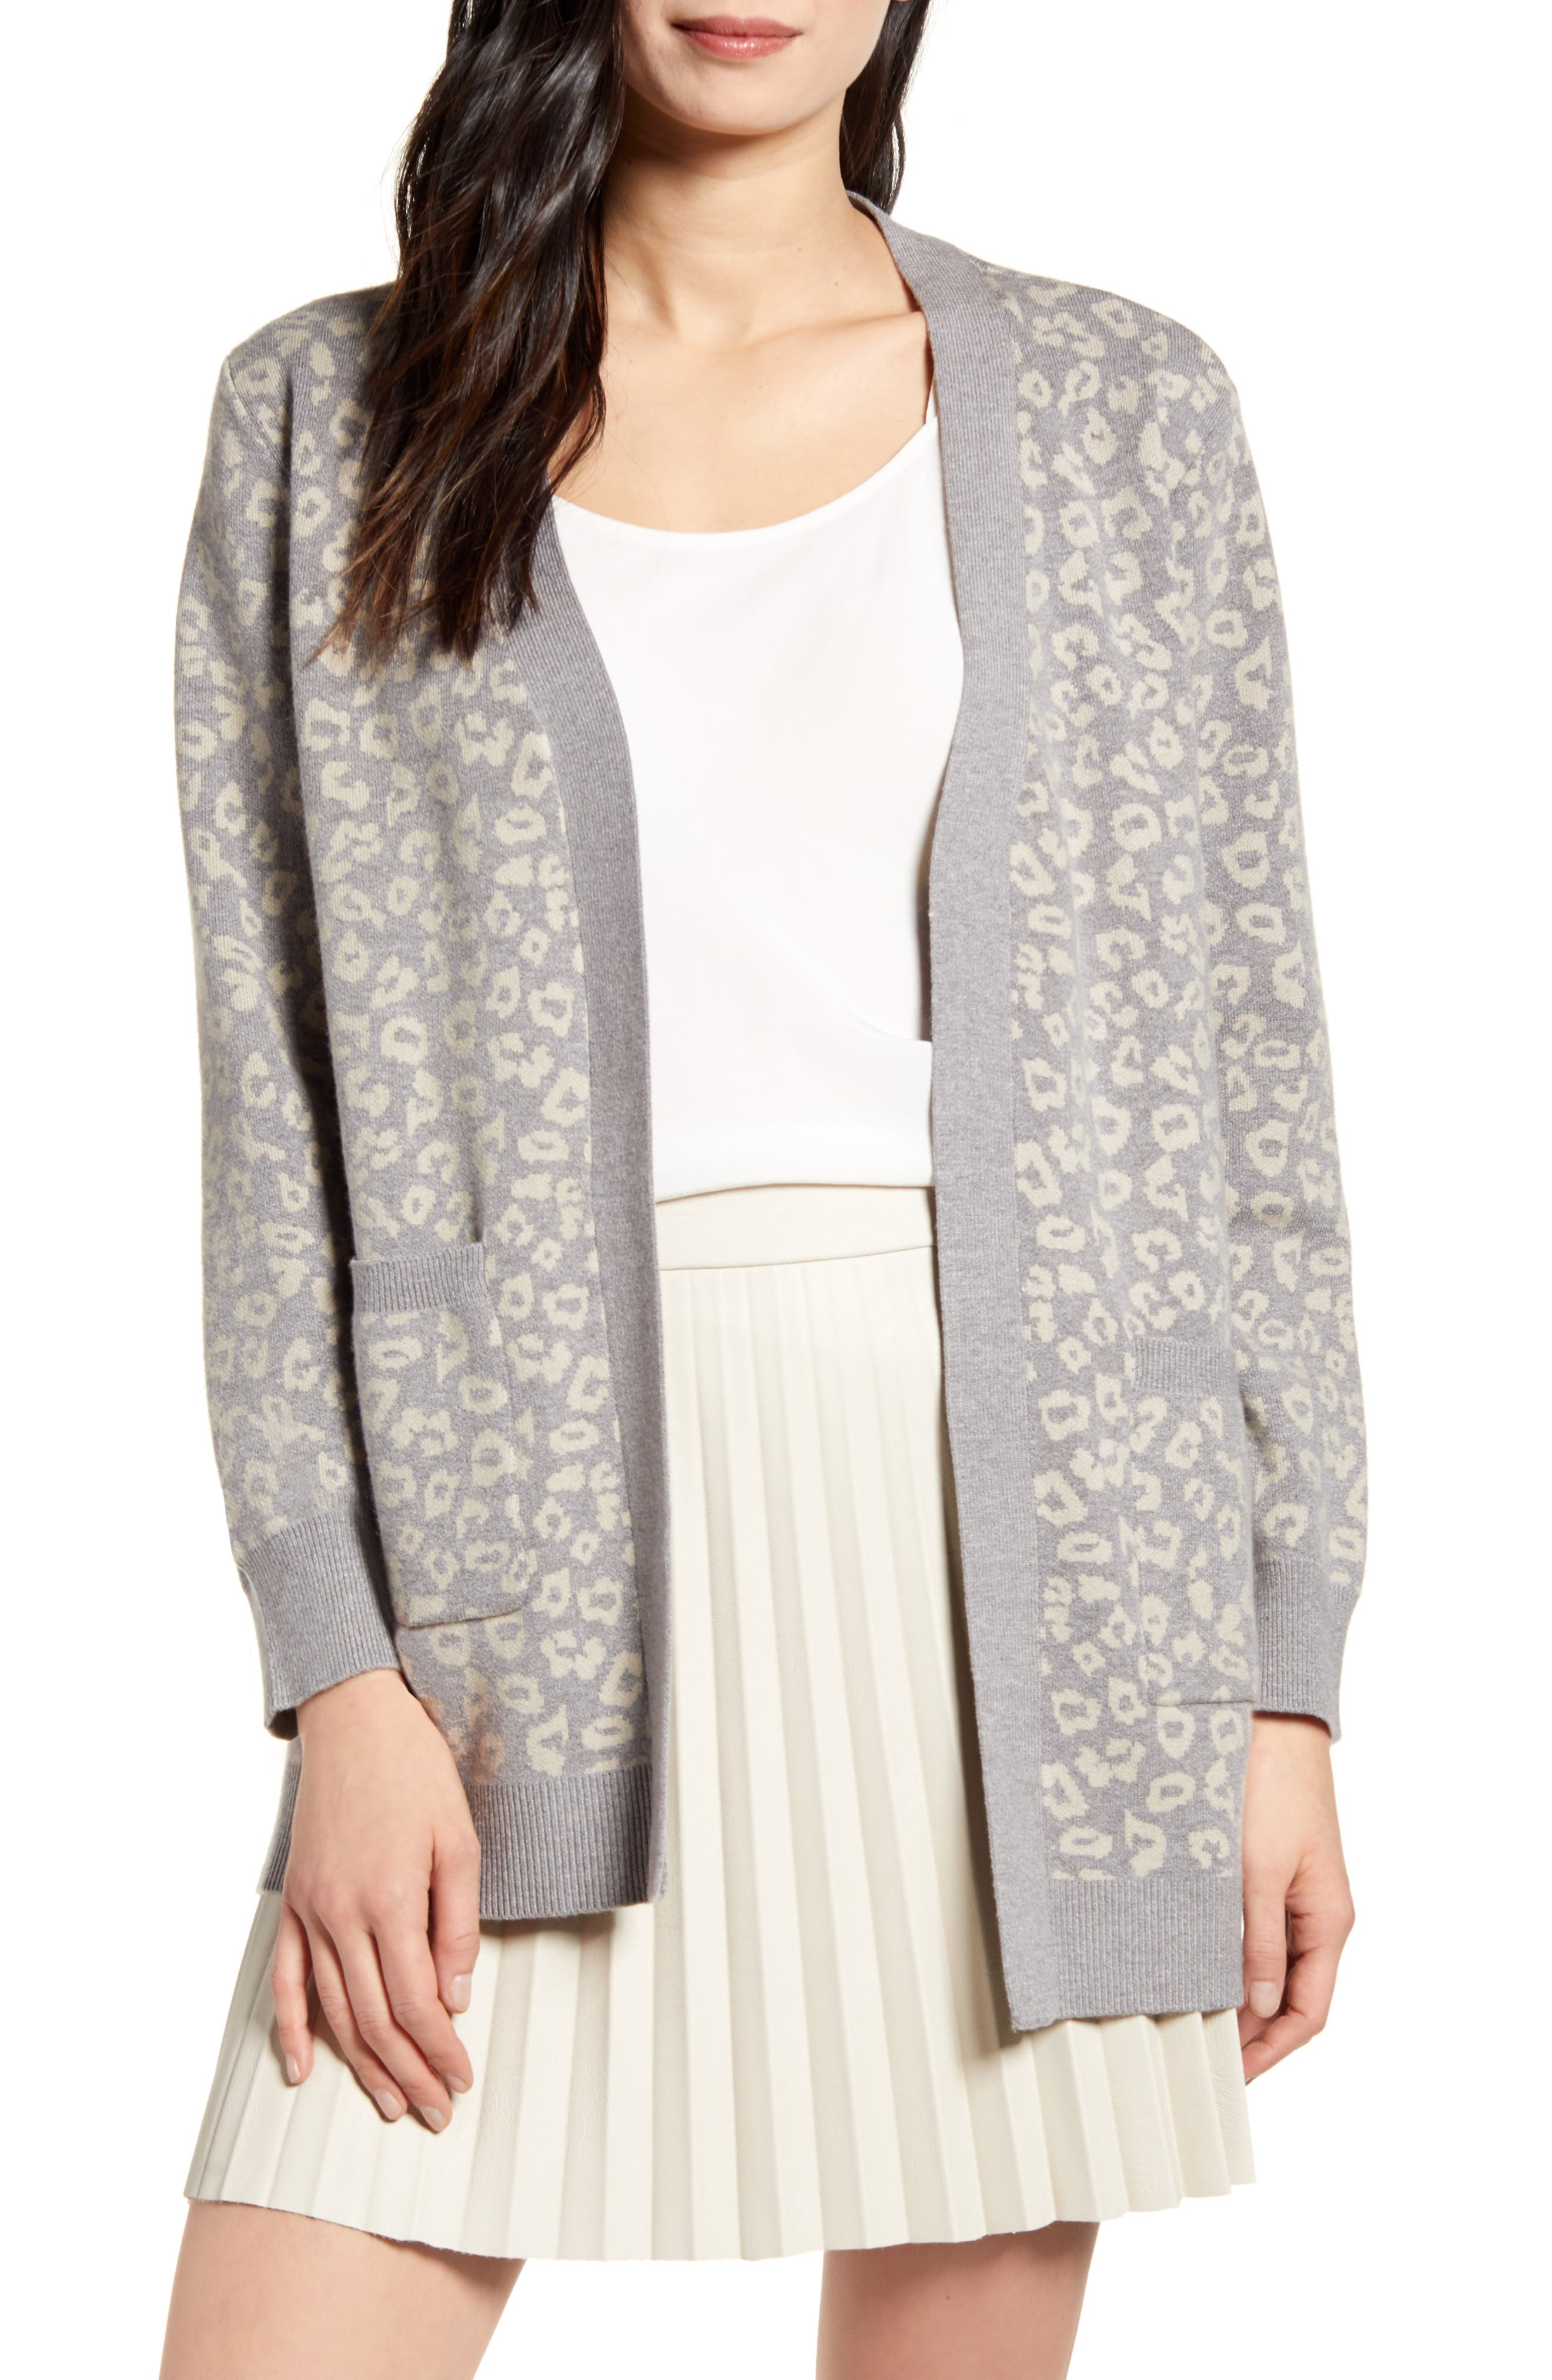 Image of: Cupcakes And Cashmere Cheyenne Leopard Print Cardigan Nordstrom Rack